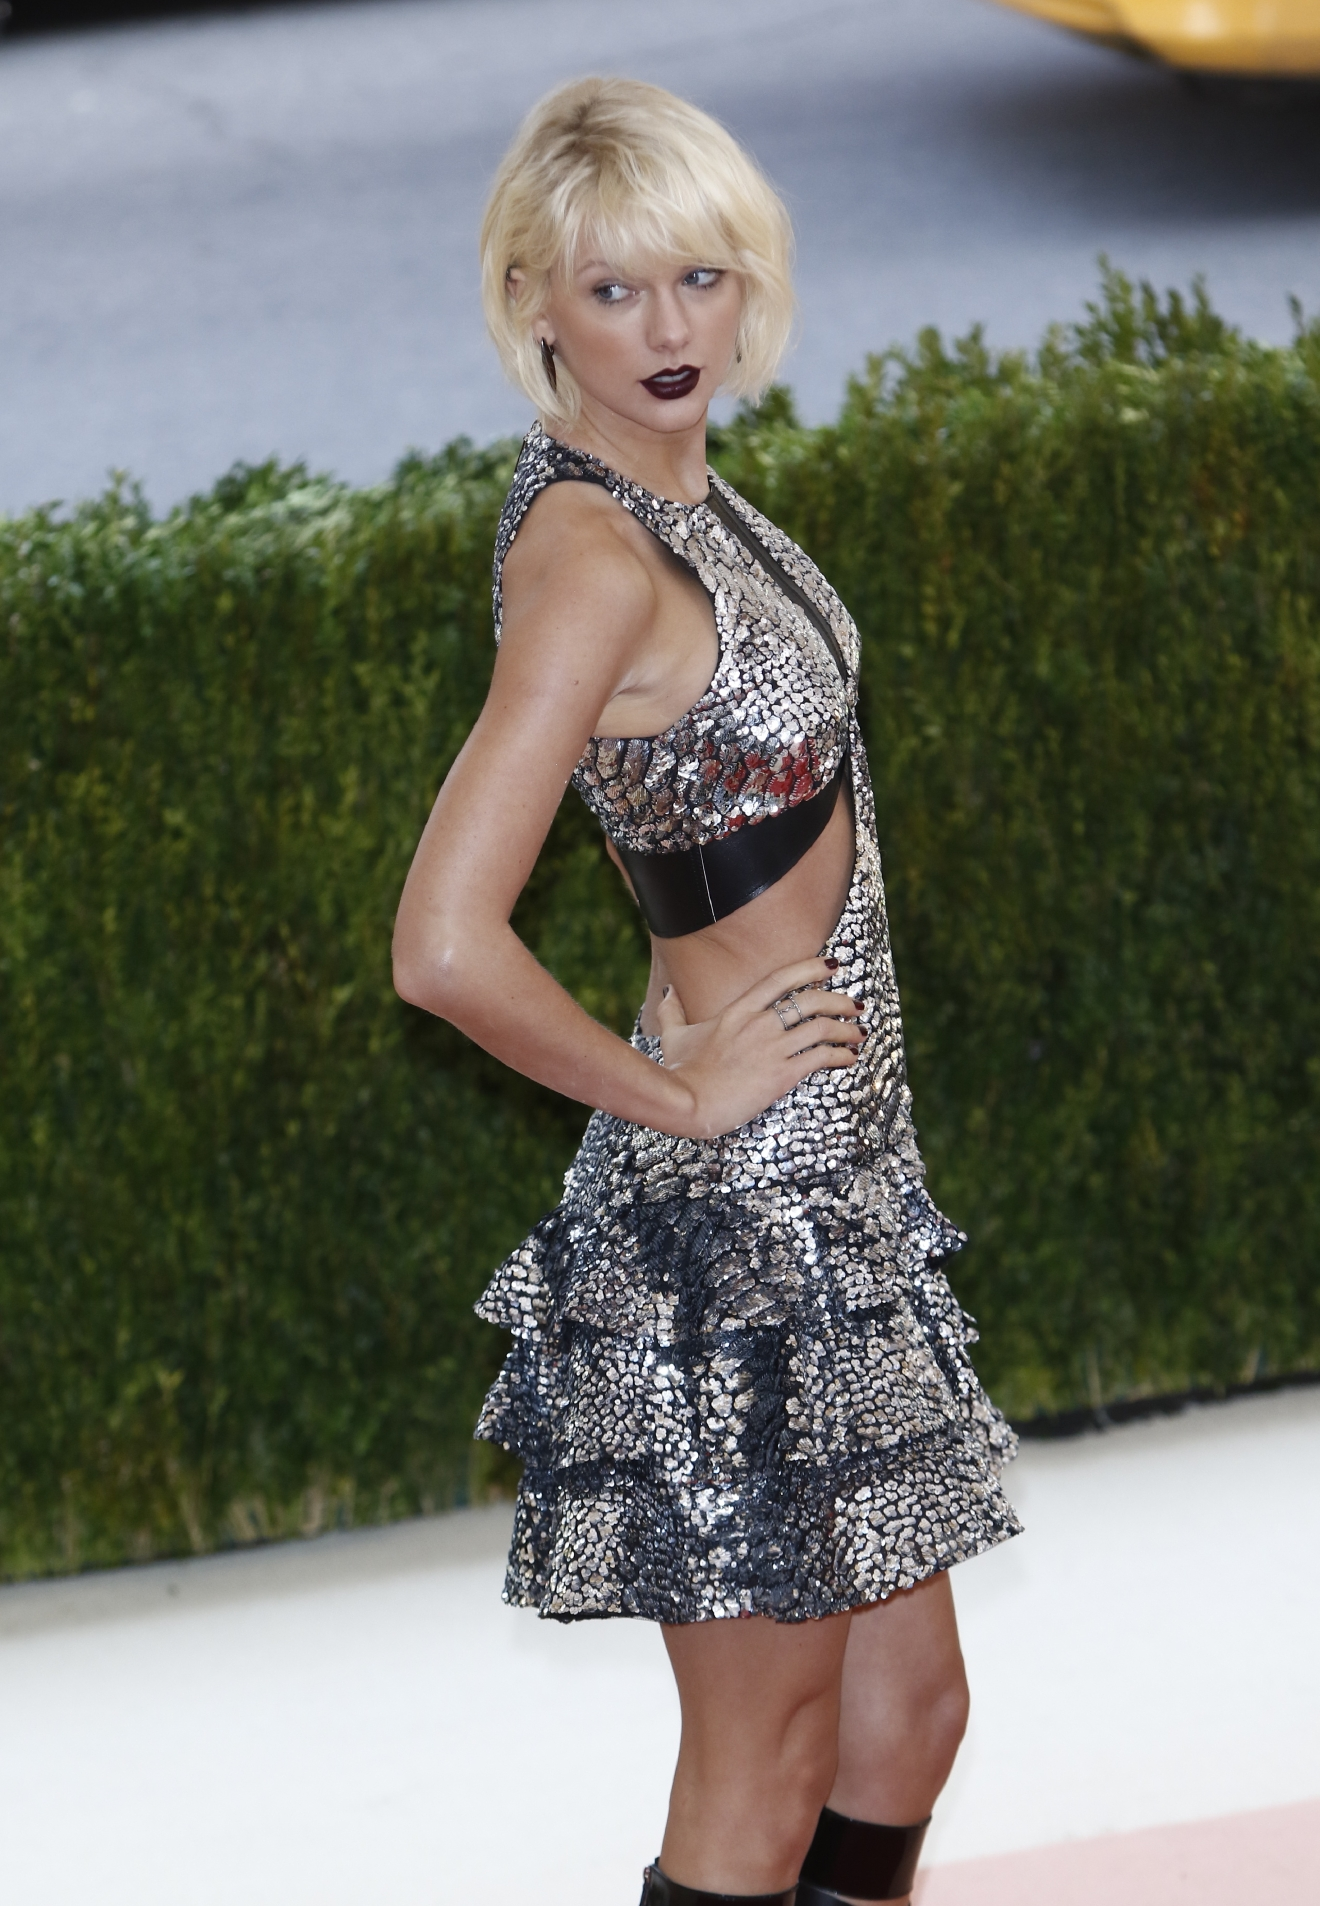 Taylor Swift at the 'Manus x Machina: Fashion In An Age Of Technology' Costume Institute Gala held at the Metropolitan Museum of Art on May 2, 2016. (WENN.com)